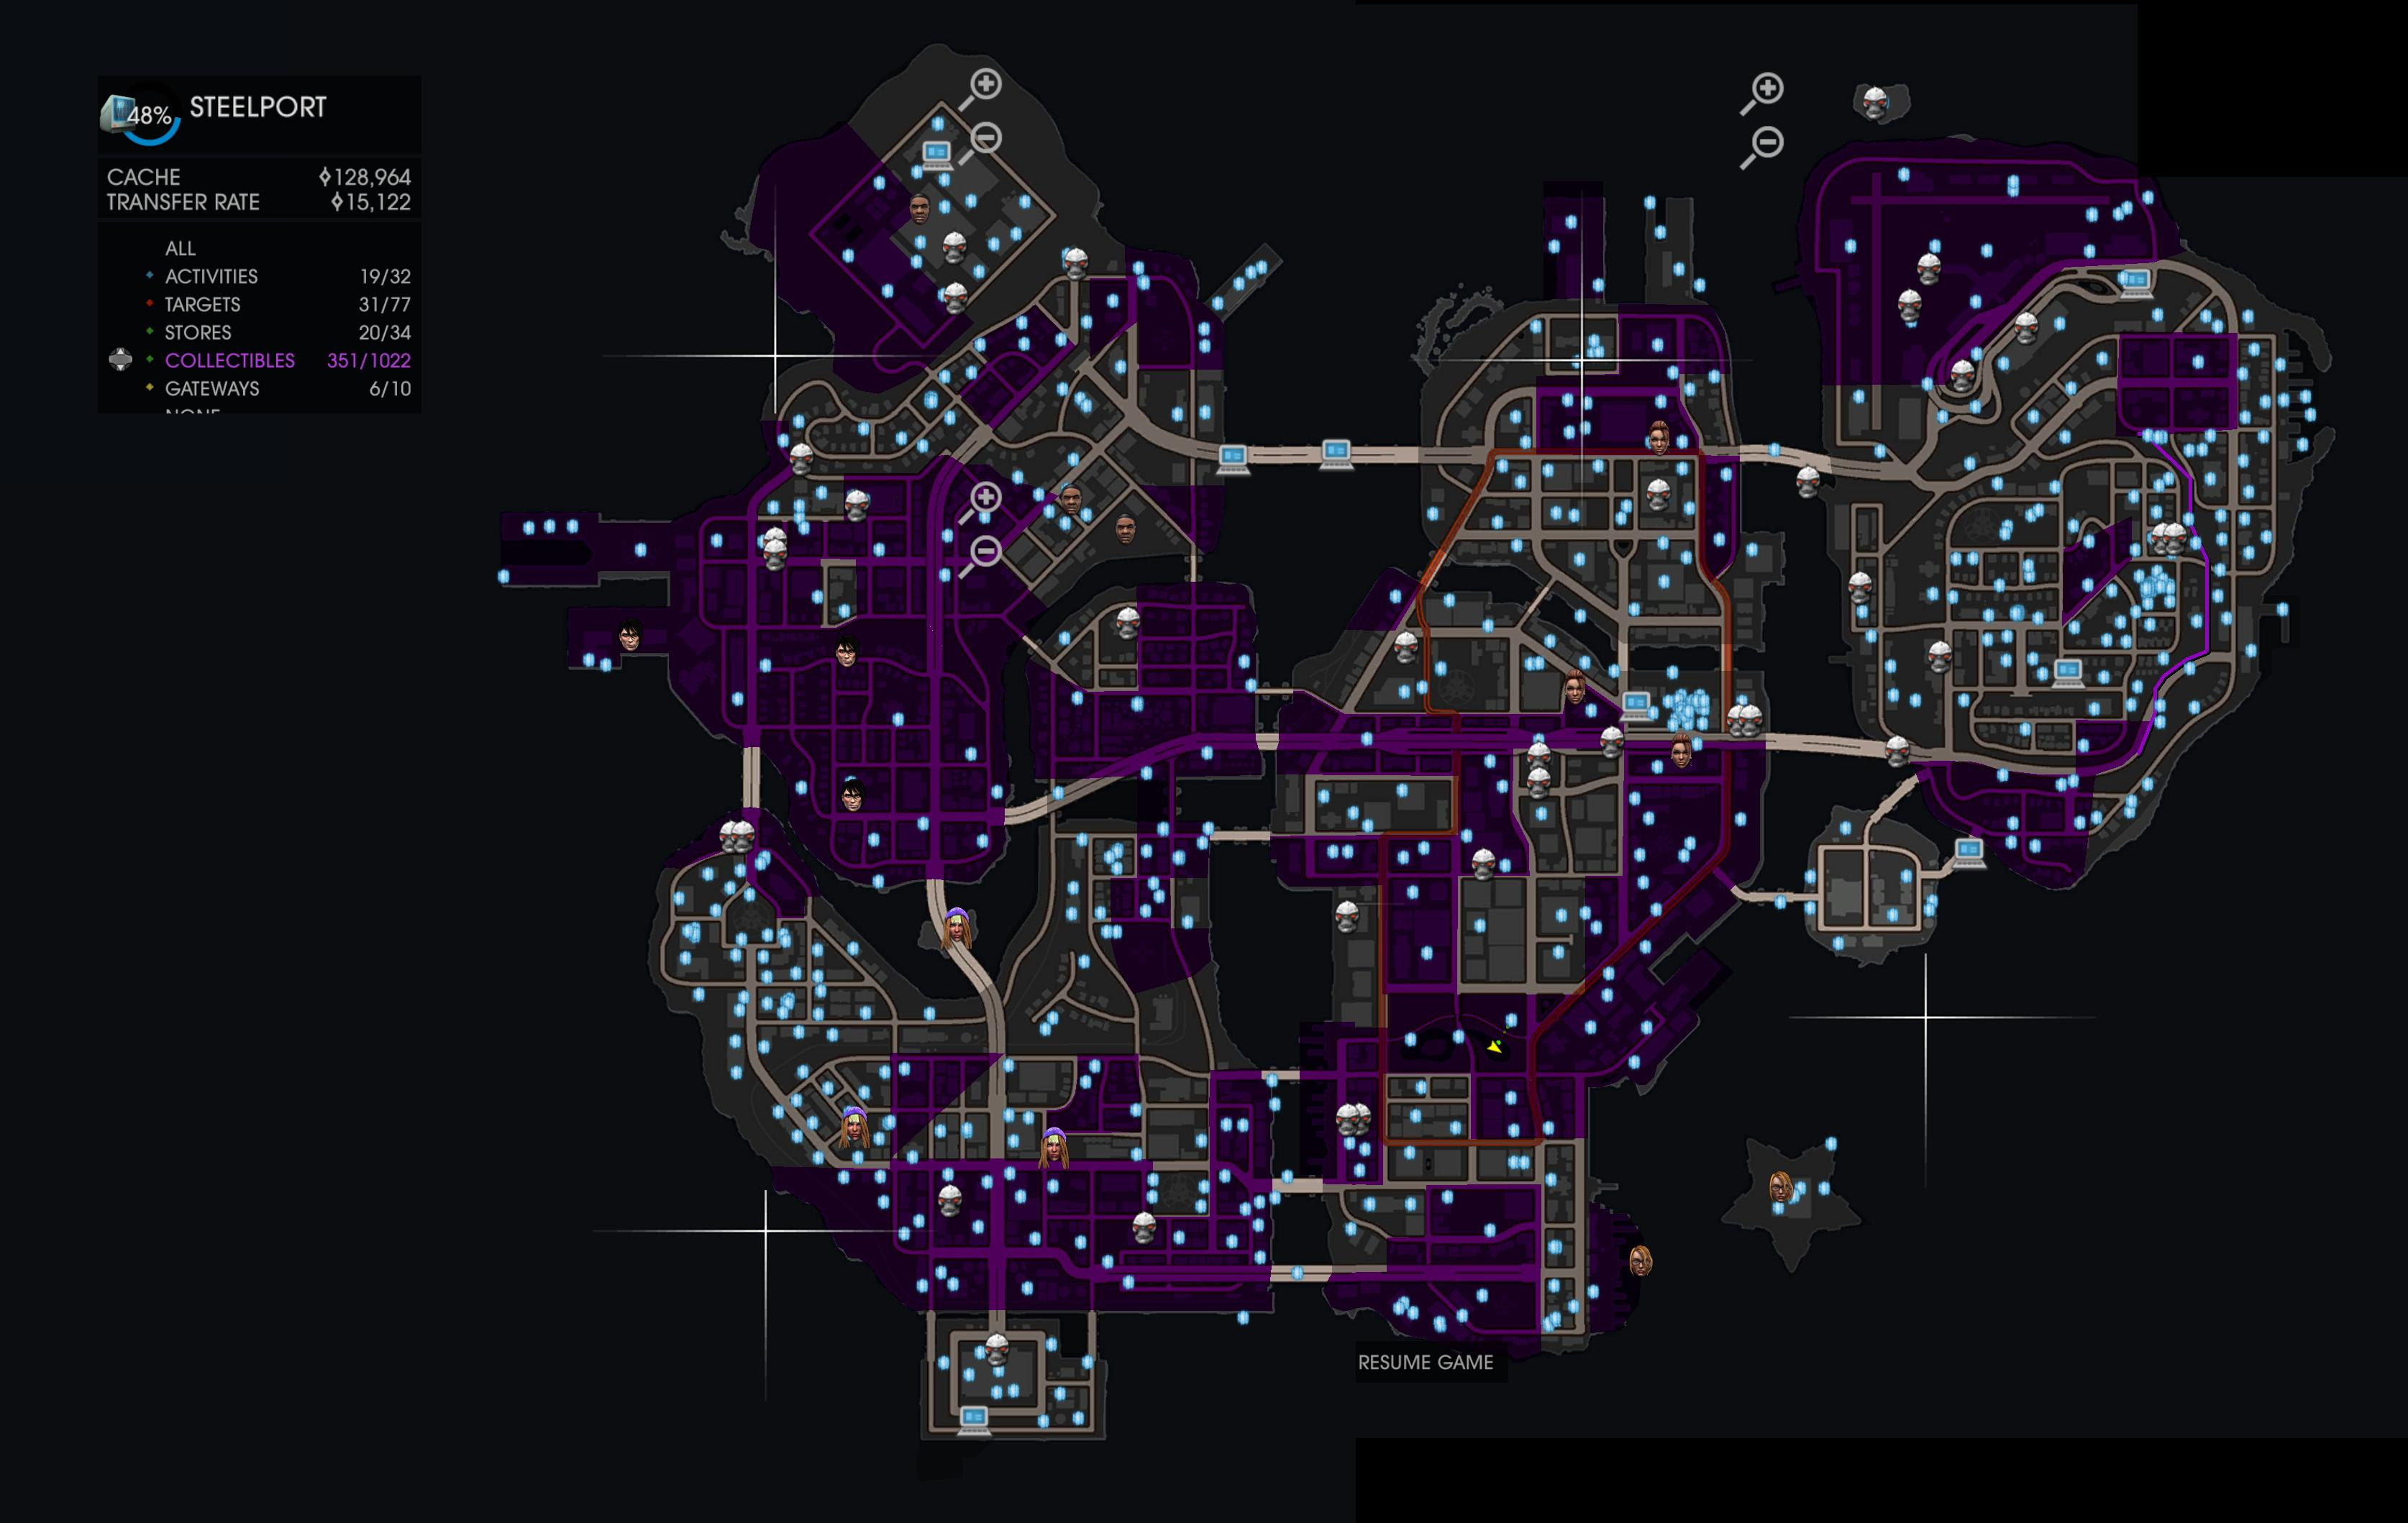 saints row 5 map, the sims 1 map, assassin's creed 1 map, saints row map only, dark souls 1 map, guild wars 1 map, driver 1 map, gta 4 map, gta 1 map, dragon quest 1 map, portal 1 map, uncharted 1 map, gta san andreas map, risen 1 map, saints row hell map, saints row iv map, just cause 1 map, skyrim map, saints row cd map, resident evil 1 map, on saints row 1 map